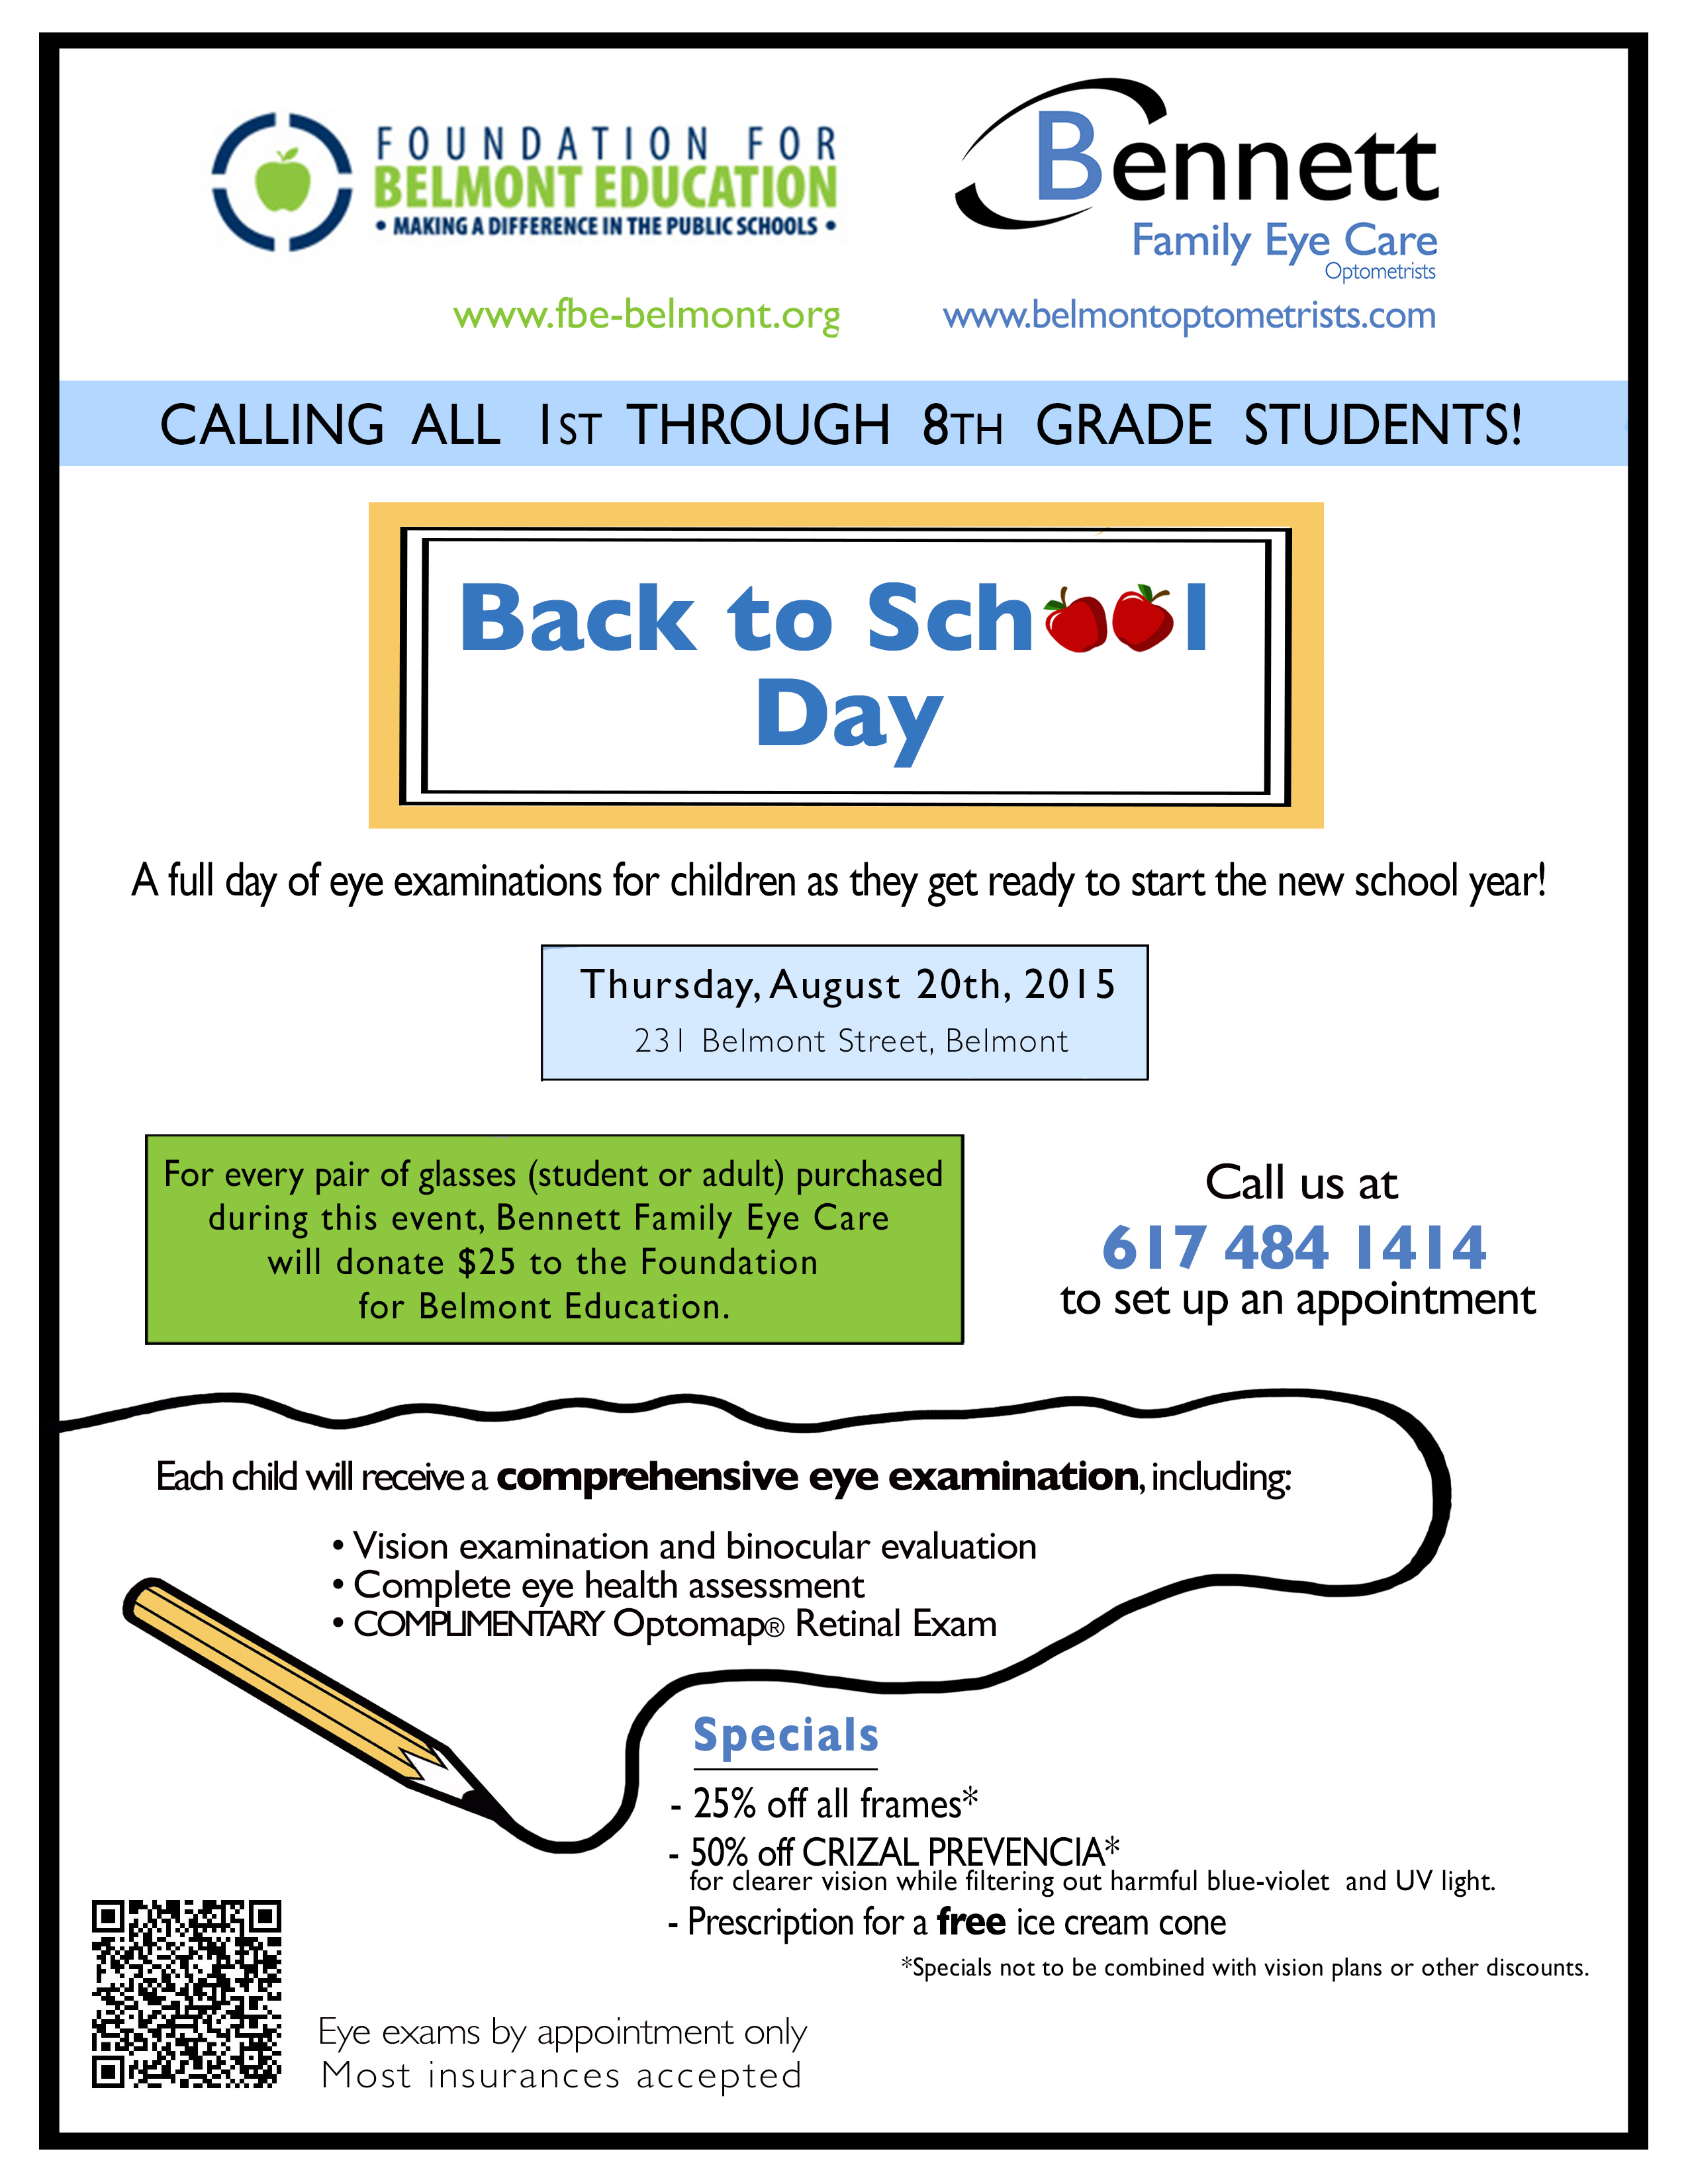 Book your student's Back to School Day appointment at Bennett Family Eye Care and support the FBE